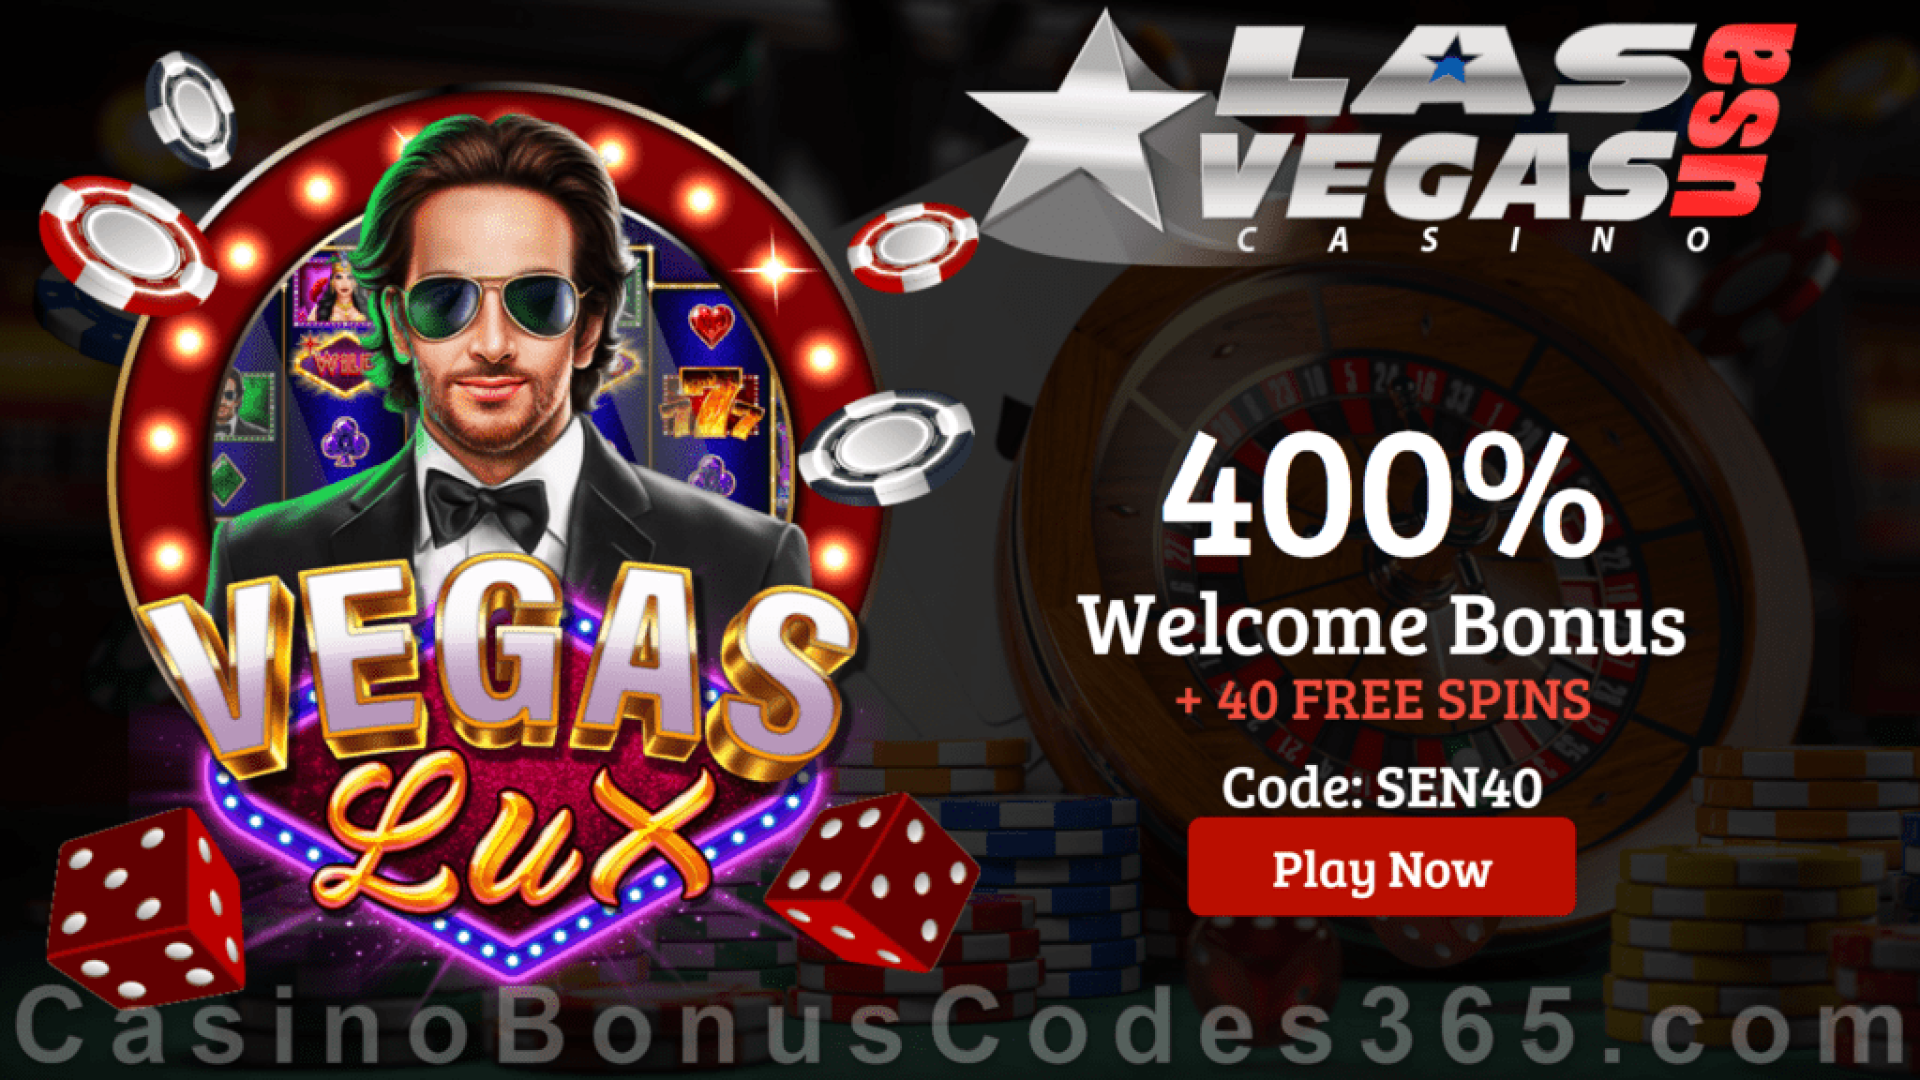 Las Vegas USA Casino 40 FREE RTG Vegas Lux Spins plus 400% Match Bonus Best Game of the Year Special Offer